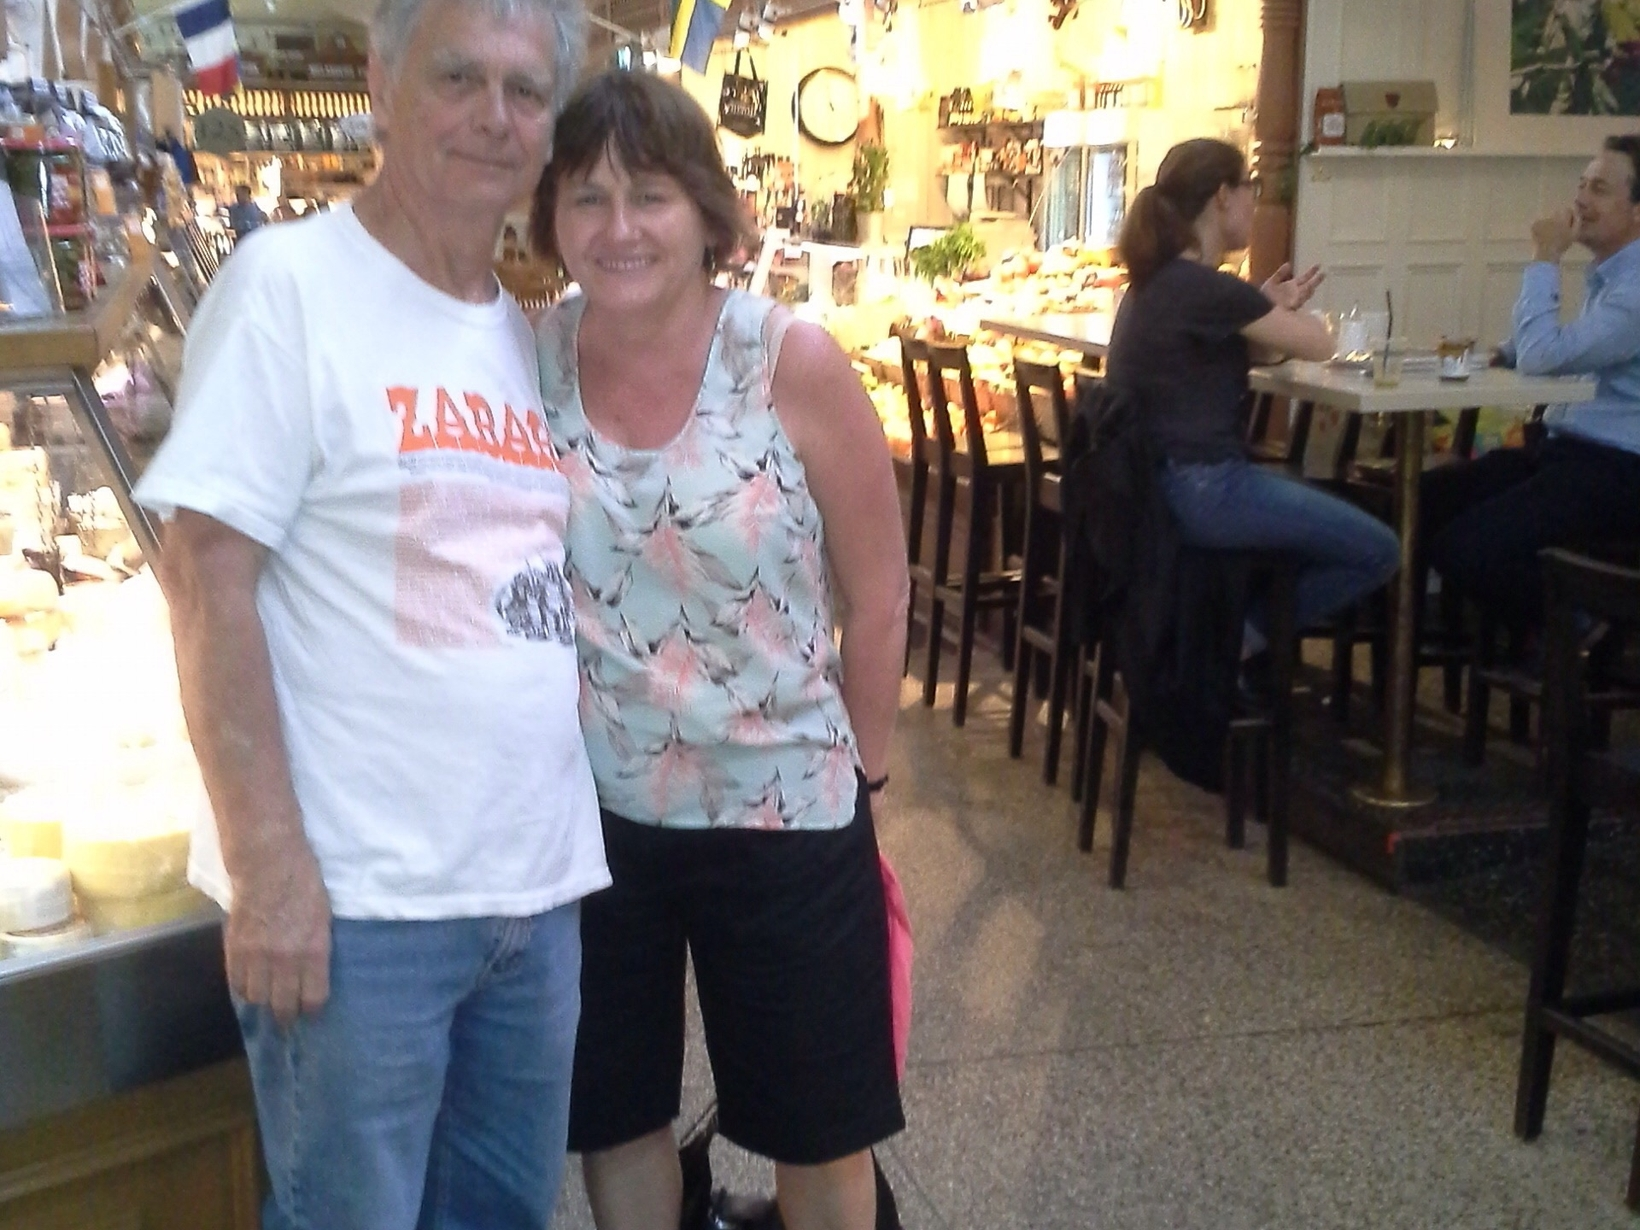 Alan & Alison from Sydney, New South Wales, Australia